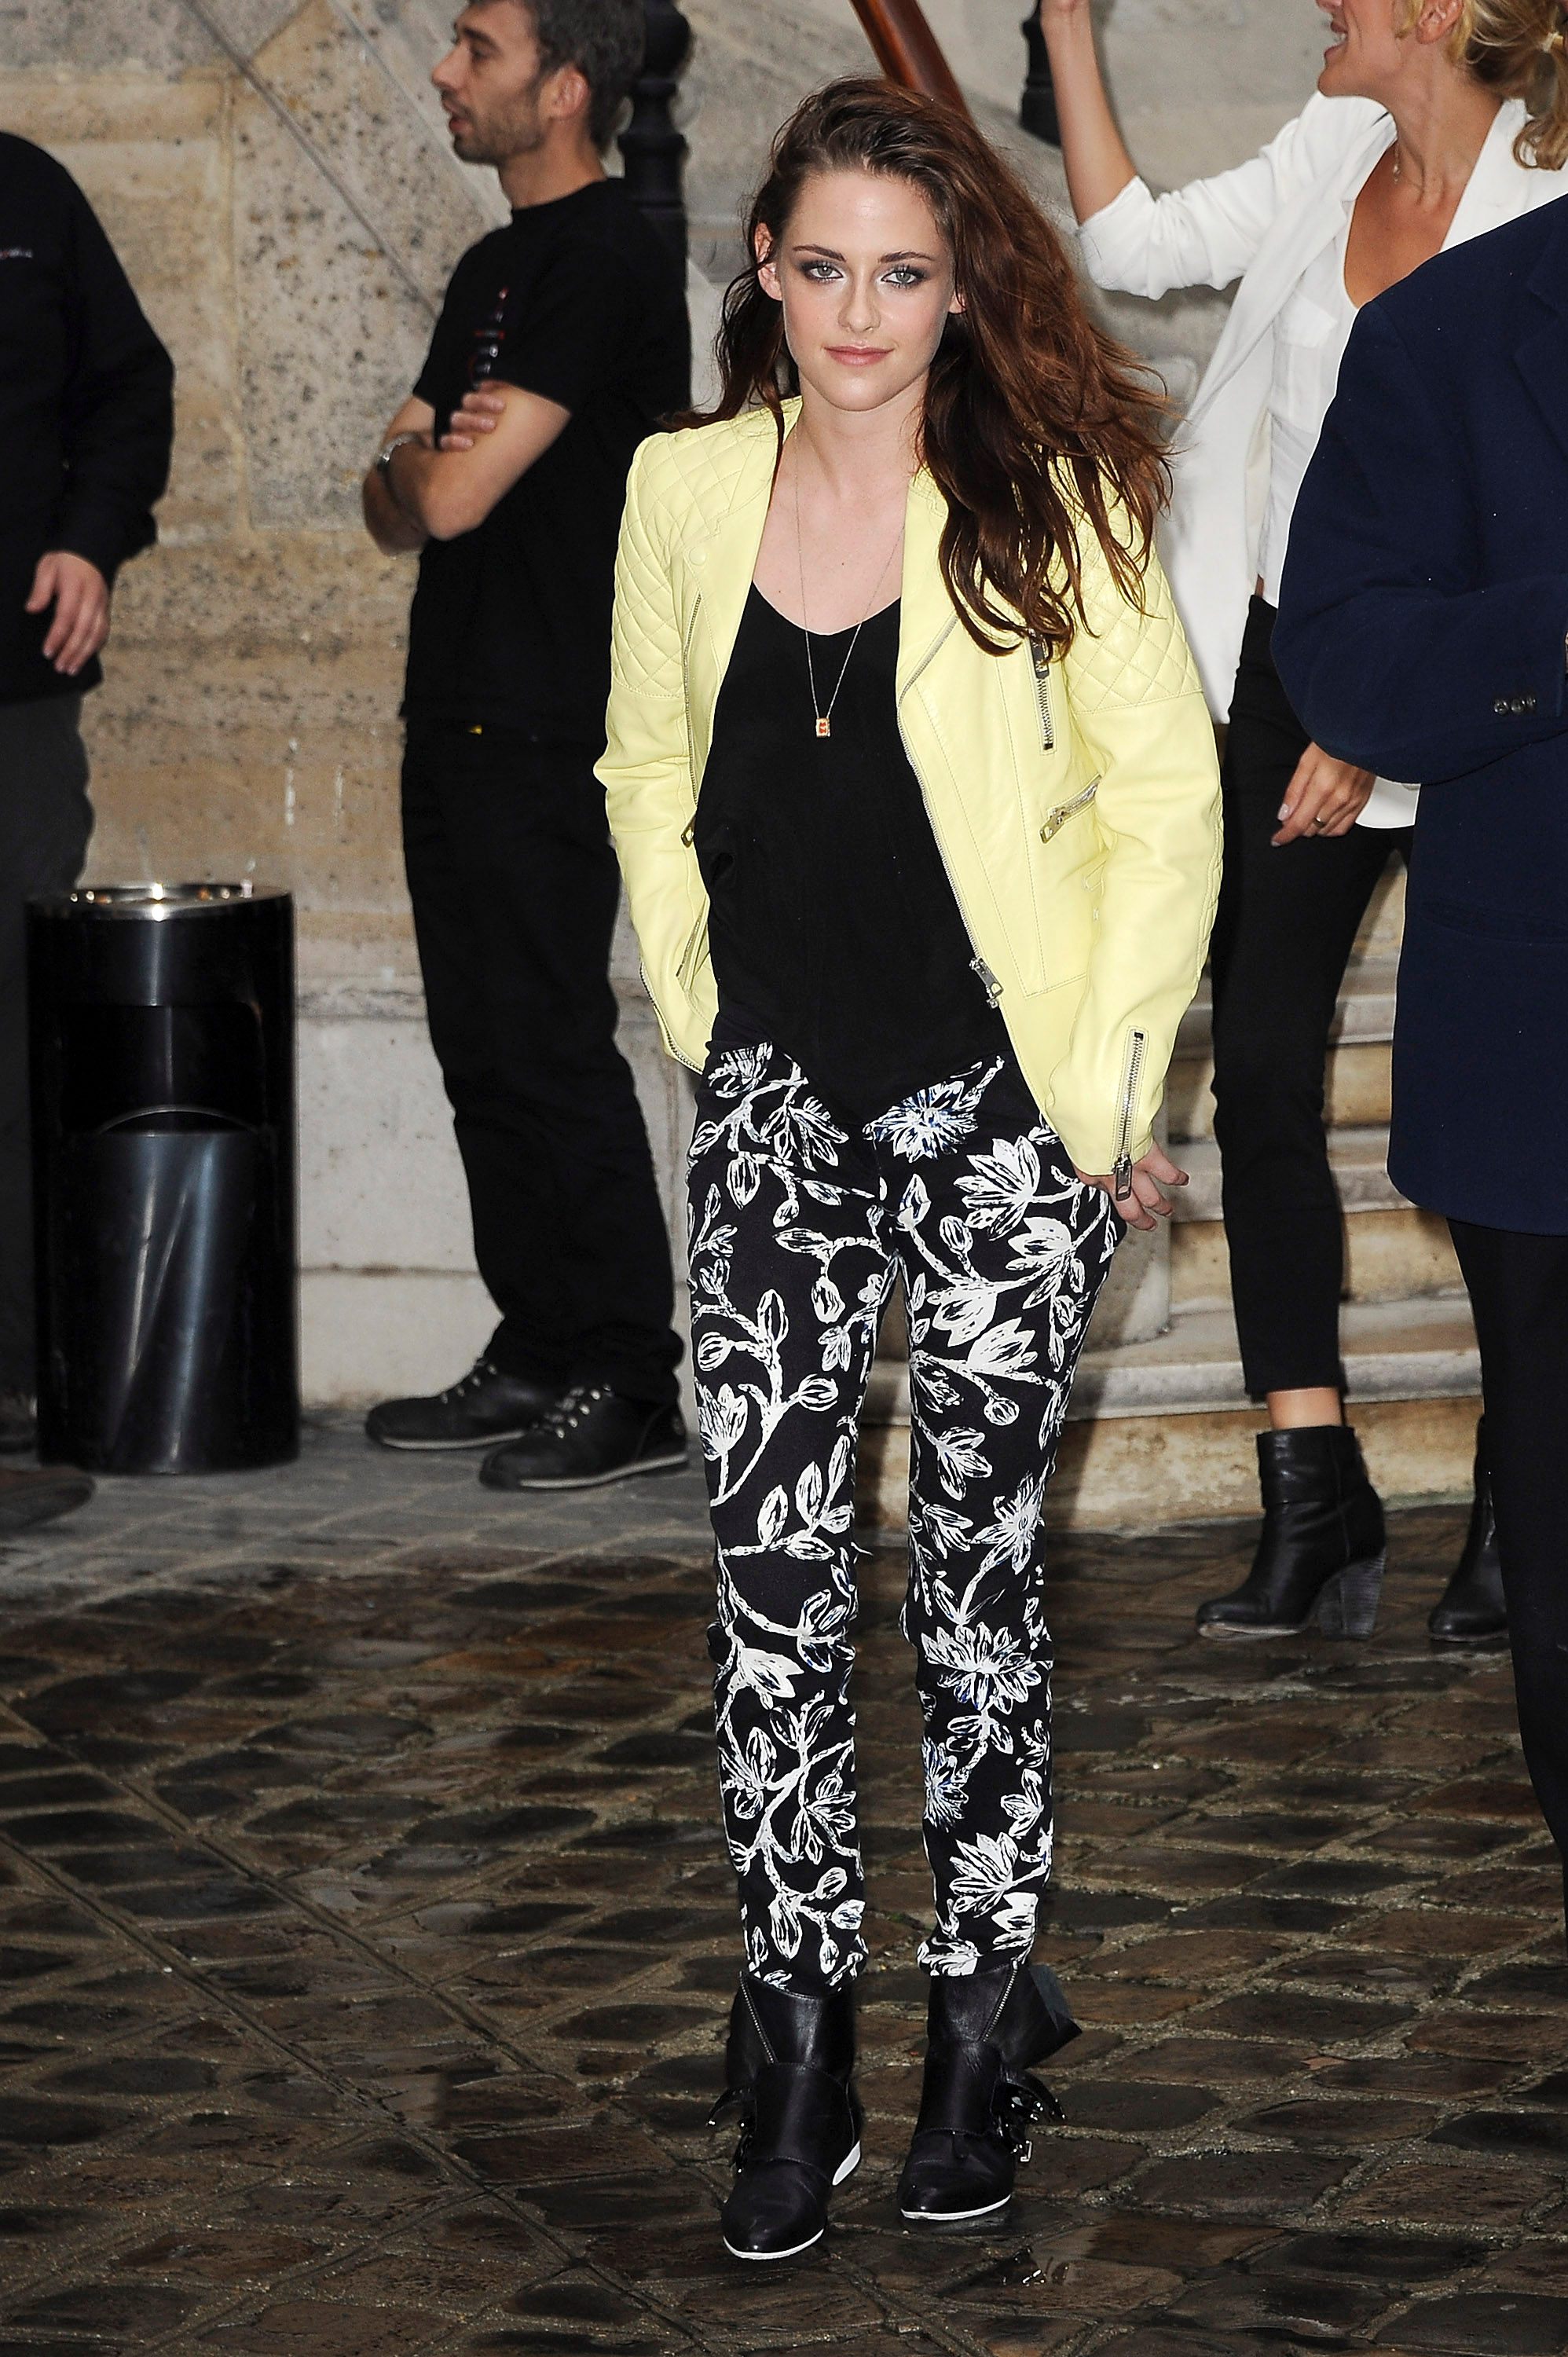 Kristen Stewart turned up the cool on this laid-back ensemble at Balenciaga, pairing a pastel moto jacket with printed trousers. She finished the look with a tough pair of buckled ankle boots.